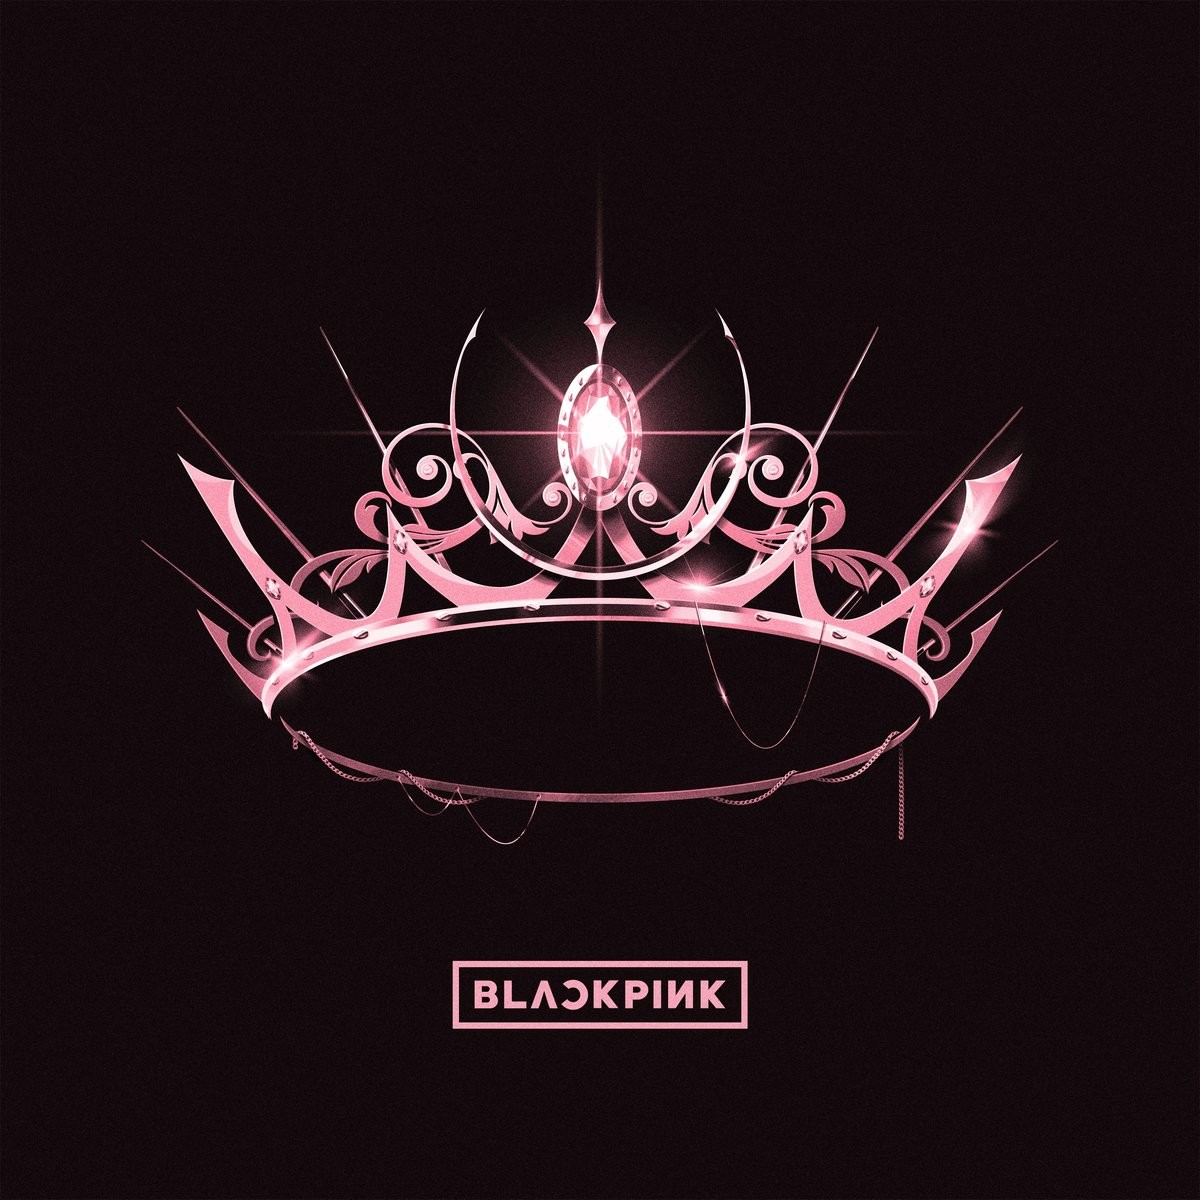 BLACKPINK – THE ALBUM [DSF DSD128 / Vinyl] [2020.10.02]